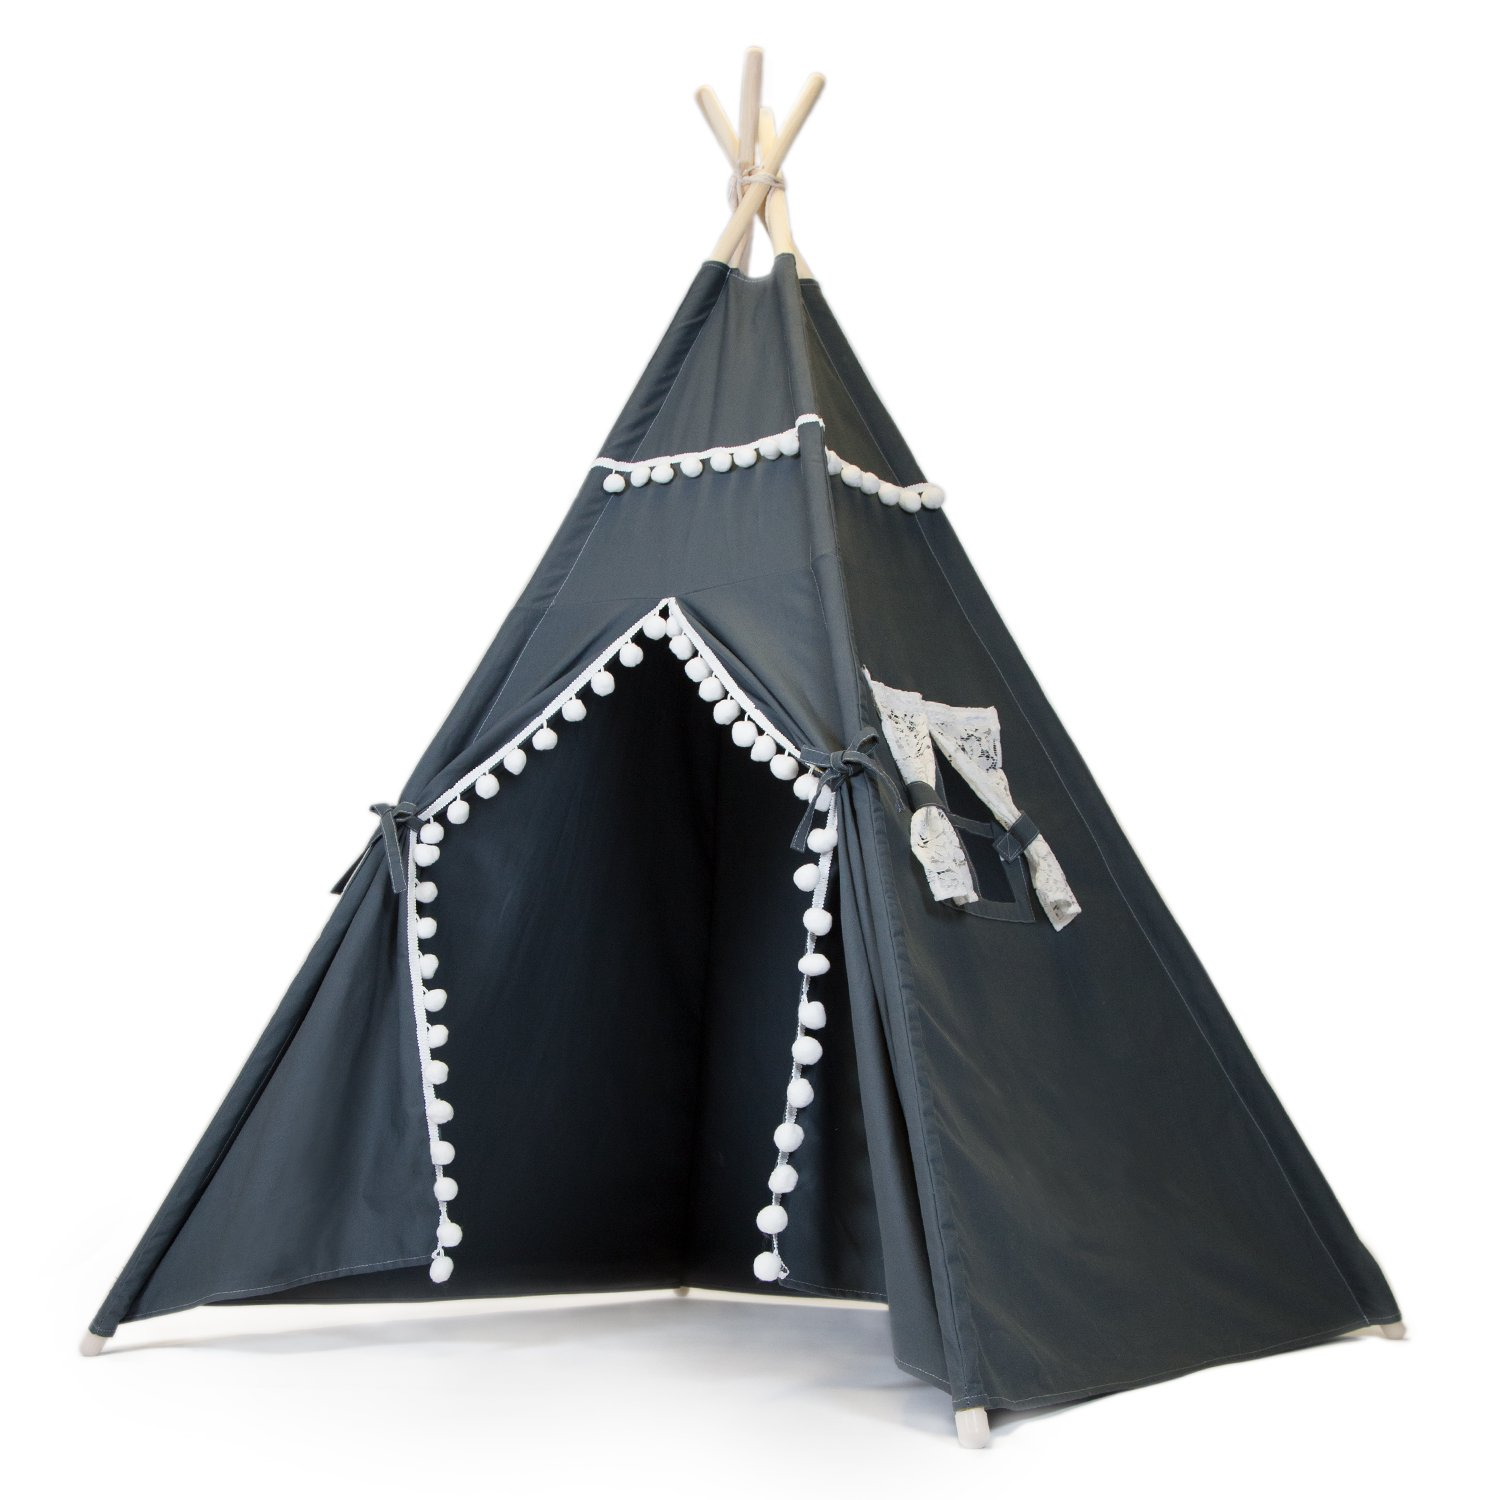 be42bc217b11 The Little Jo Kids Teepee Tent - Large Indoor Outdoor Teepee Play Tent for  Girls or Boys - White Lace or Camo Window Trim Portable Canvas Indian Tipi  Party ...